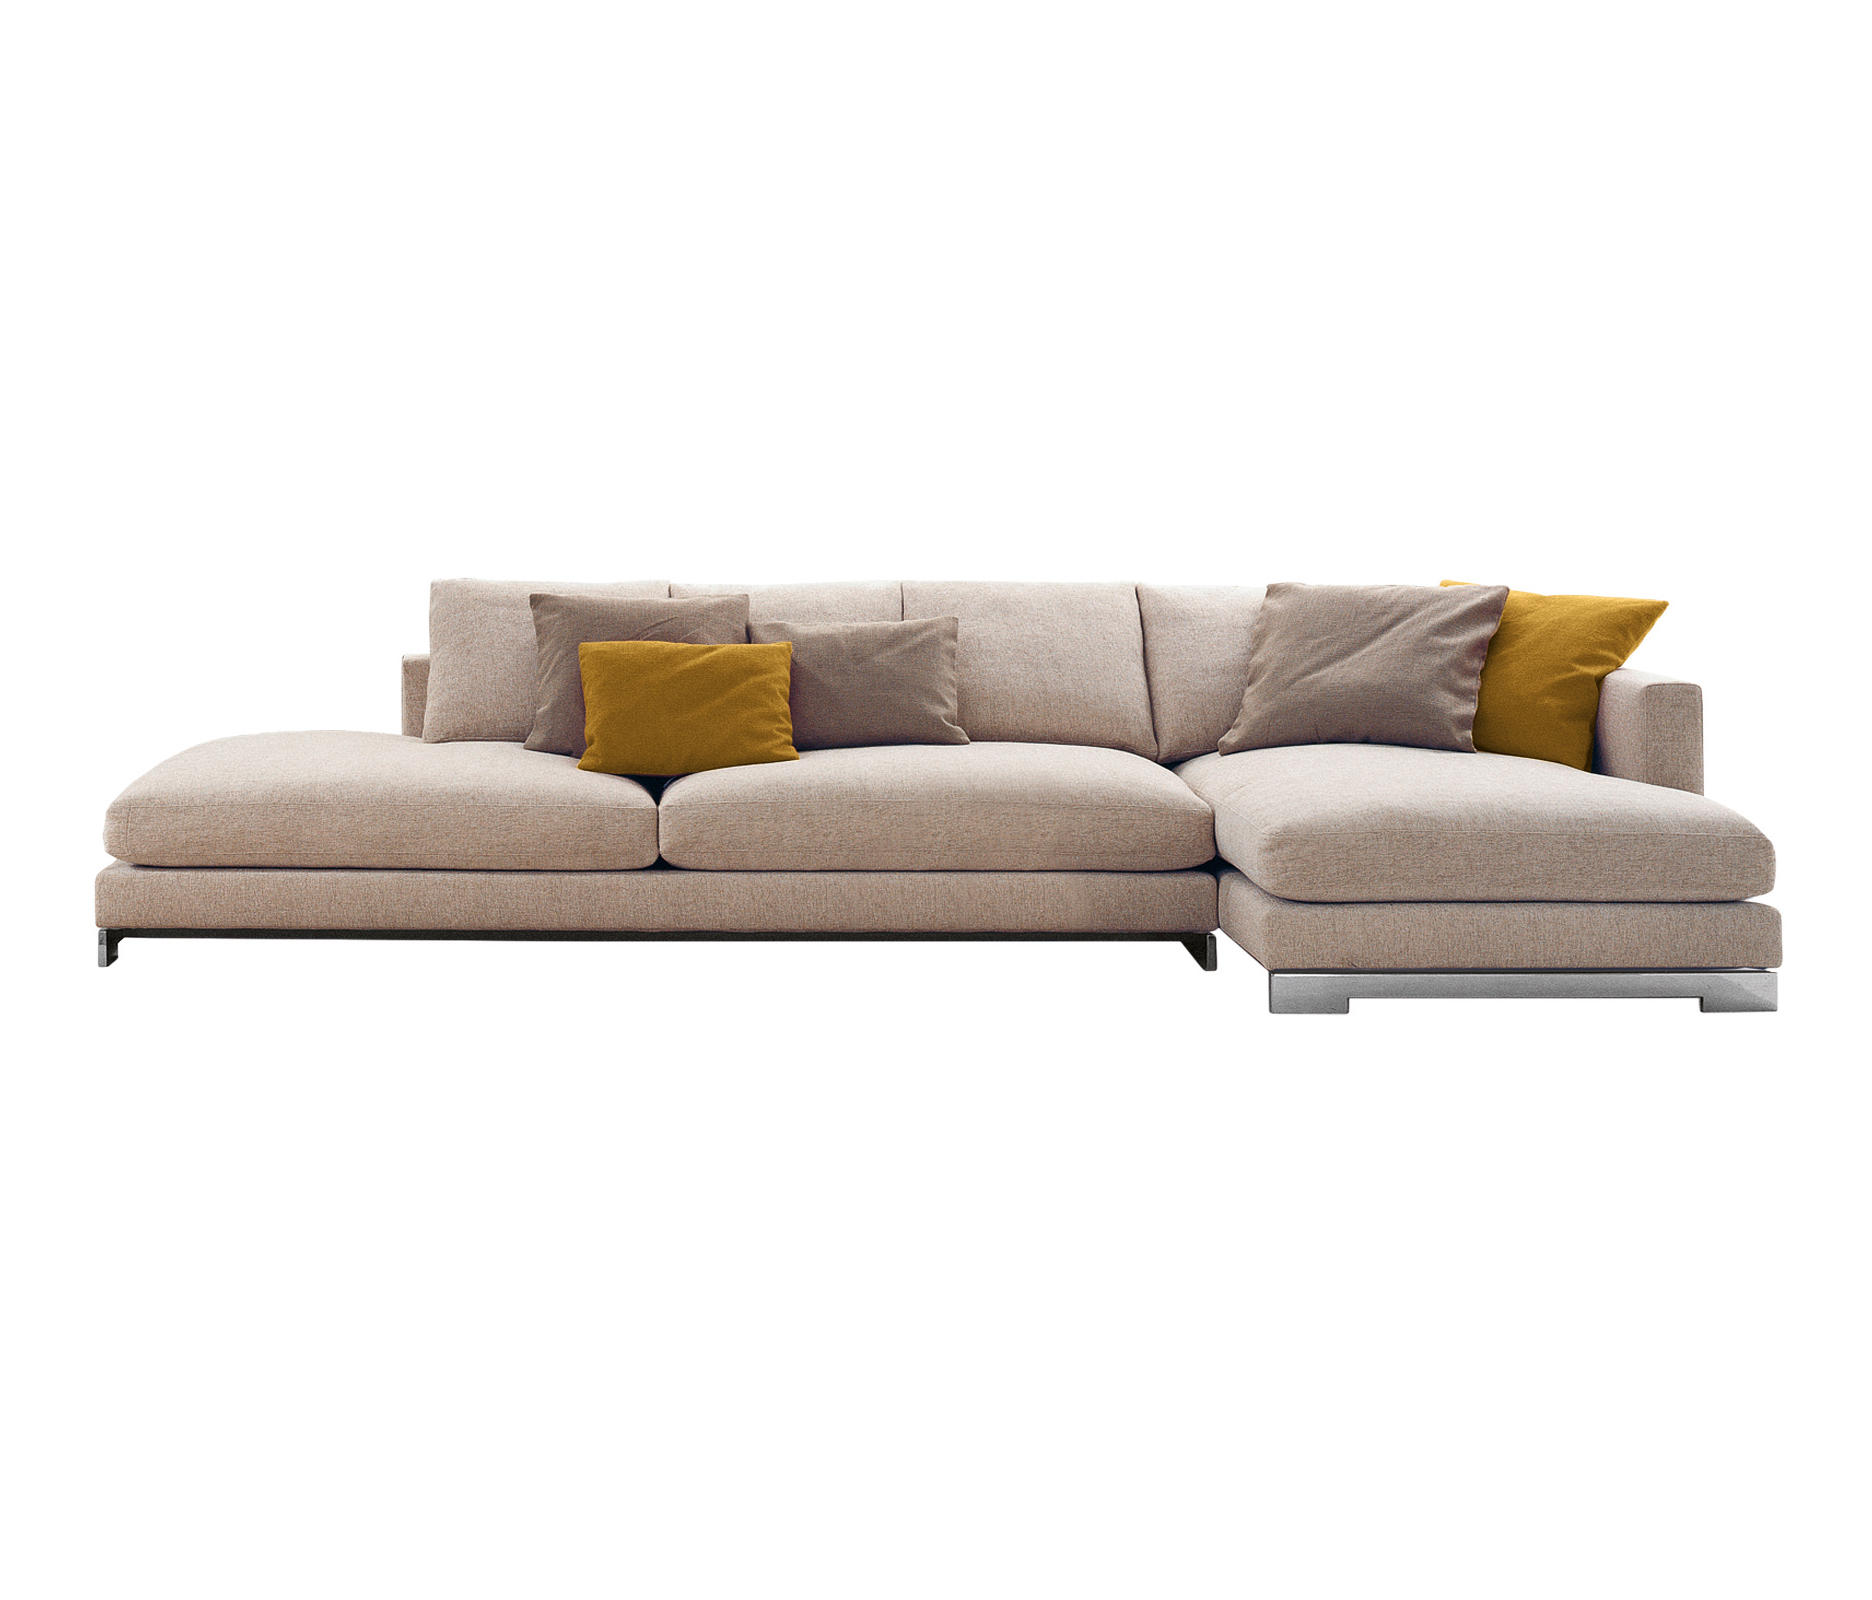 Modular Furniture Sofa: REVERSI - Modular Sofa Systems From Molteni & C